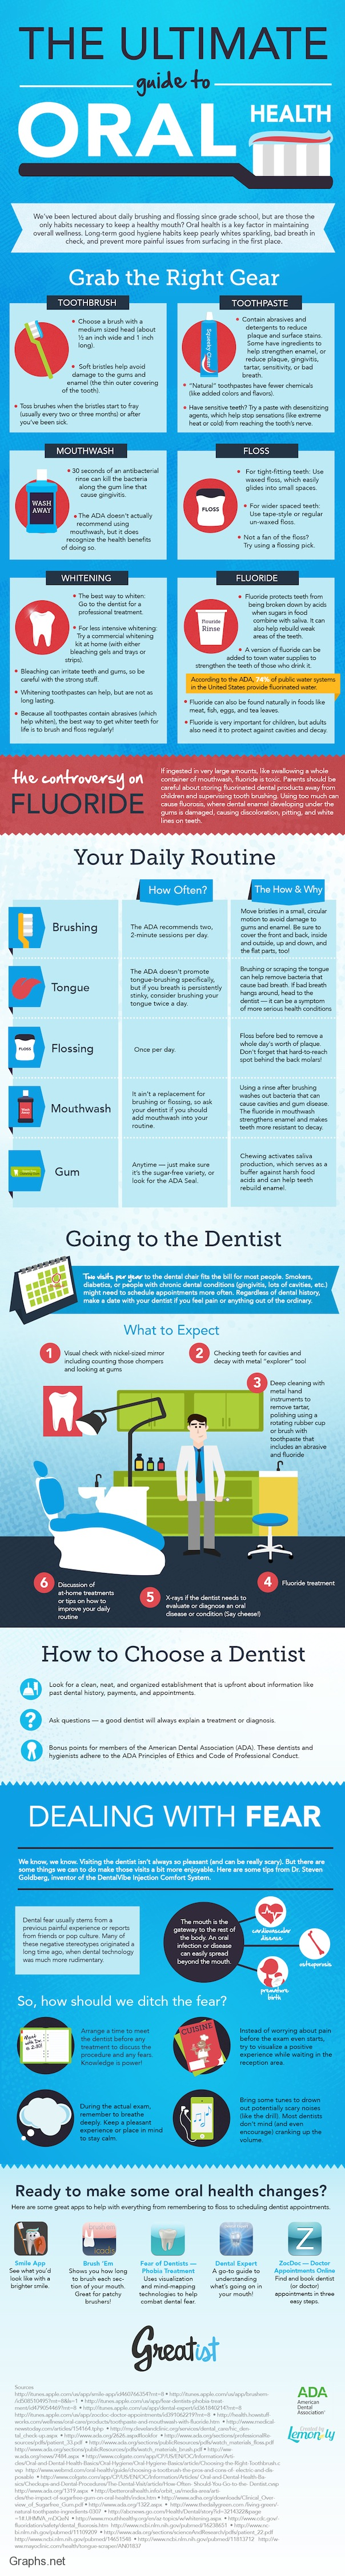 Guide to oral health